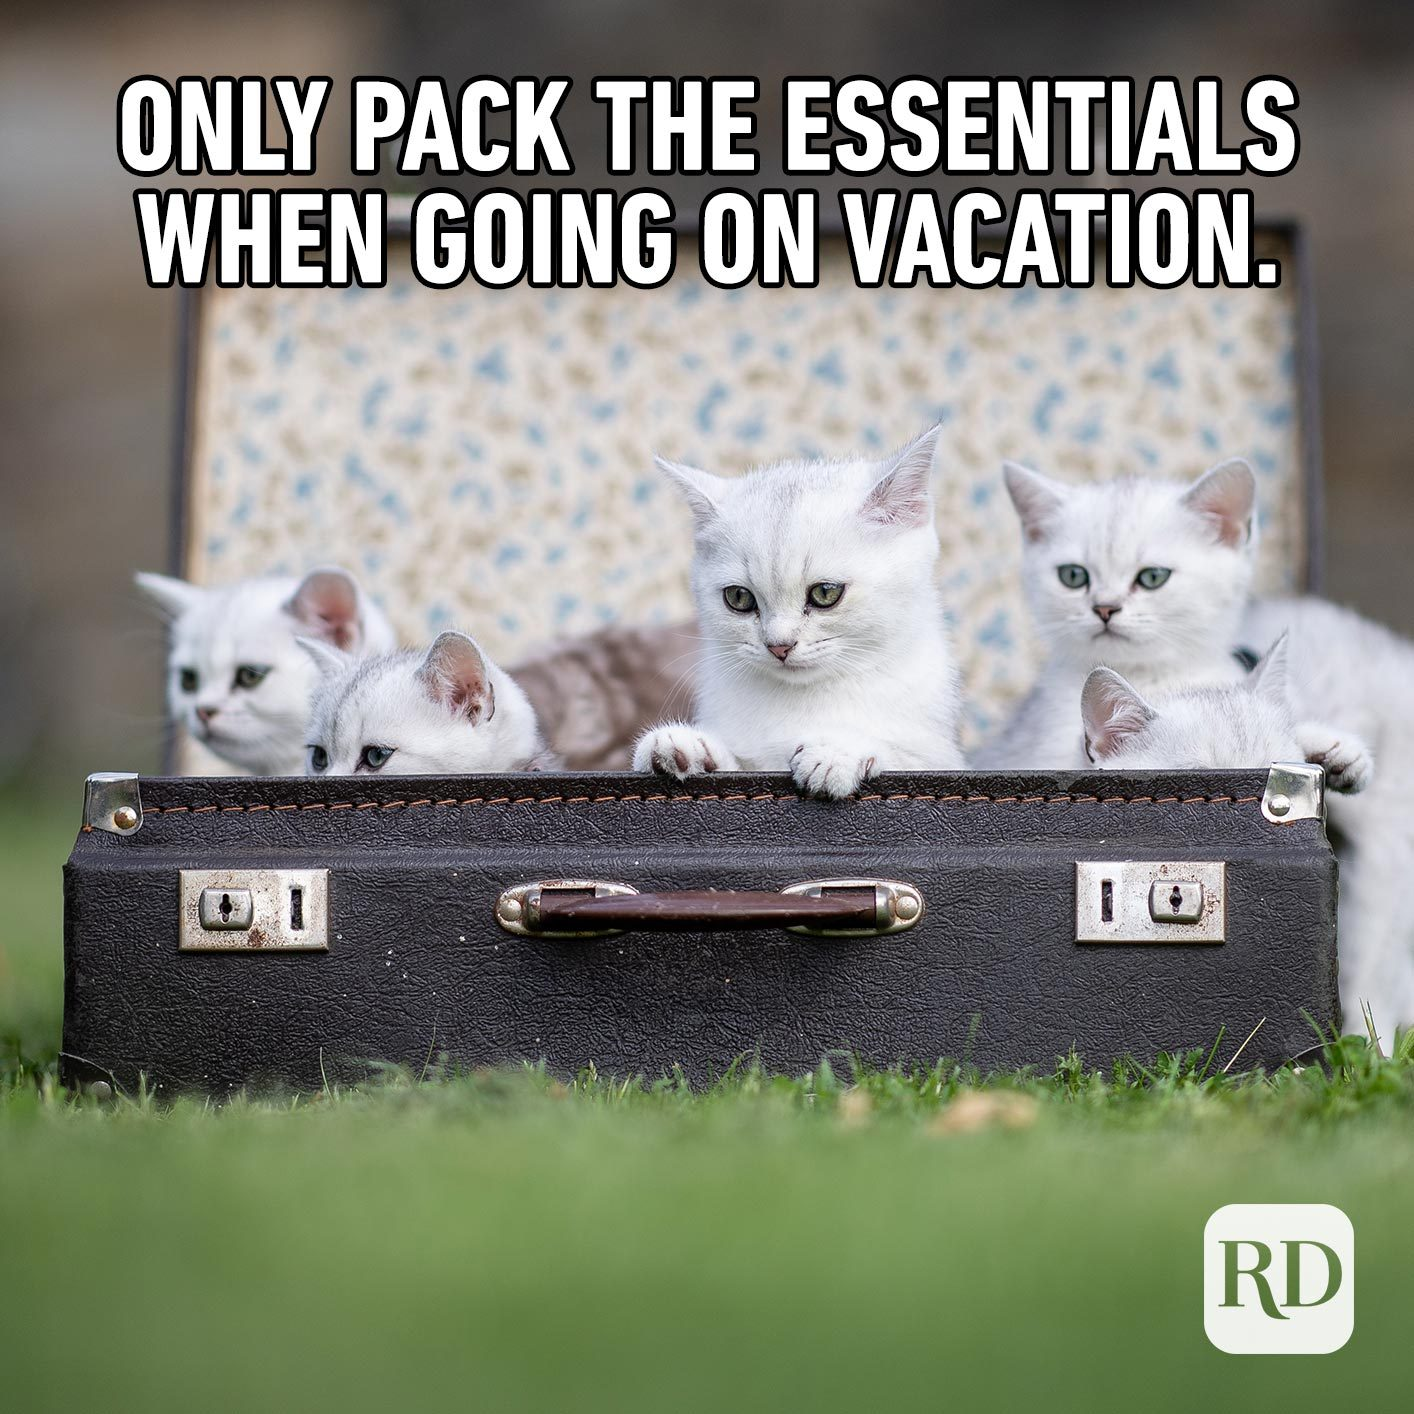 Cats in a suitcase. Meme text: Only pack the essentials when going on vacation.